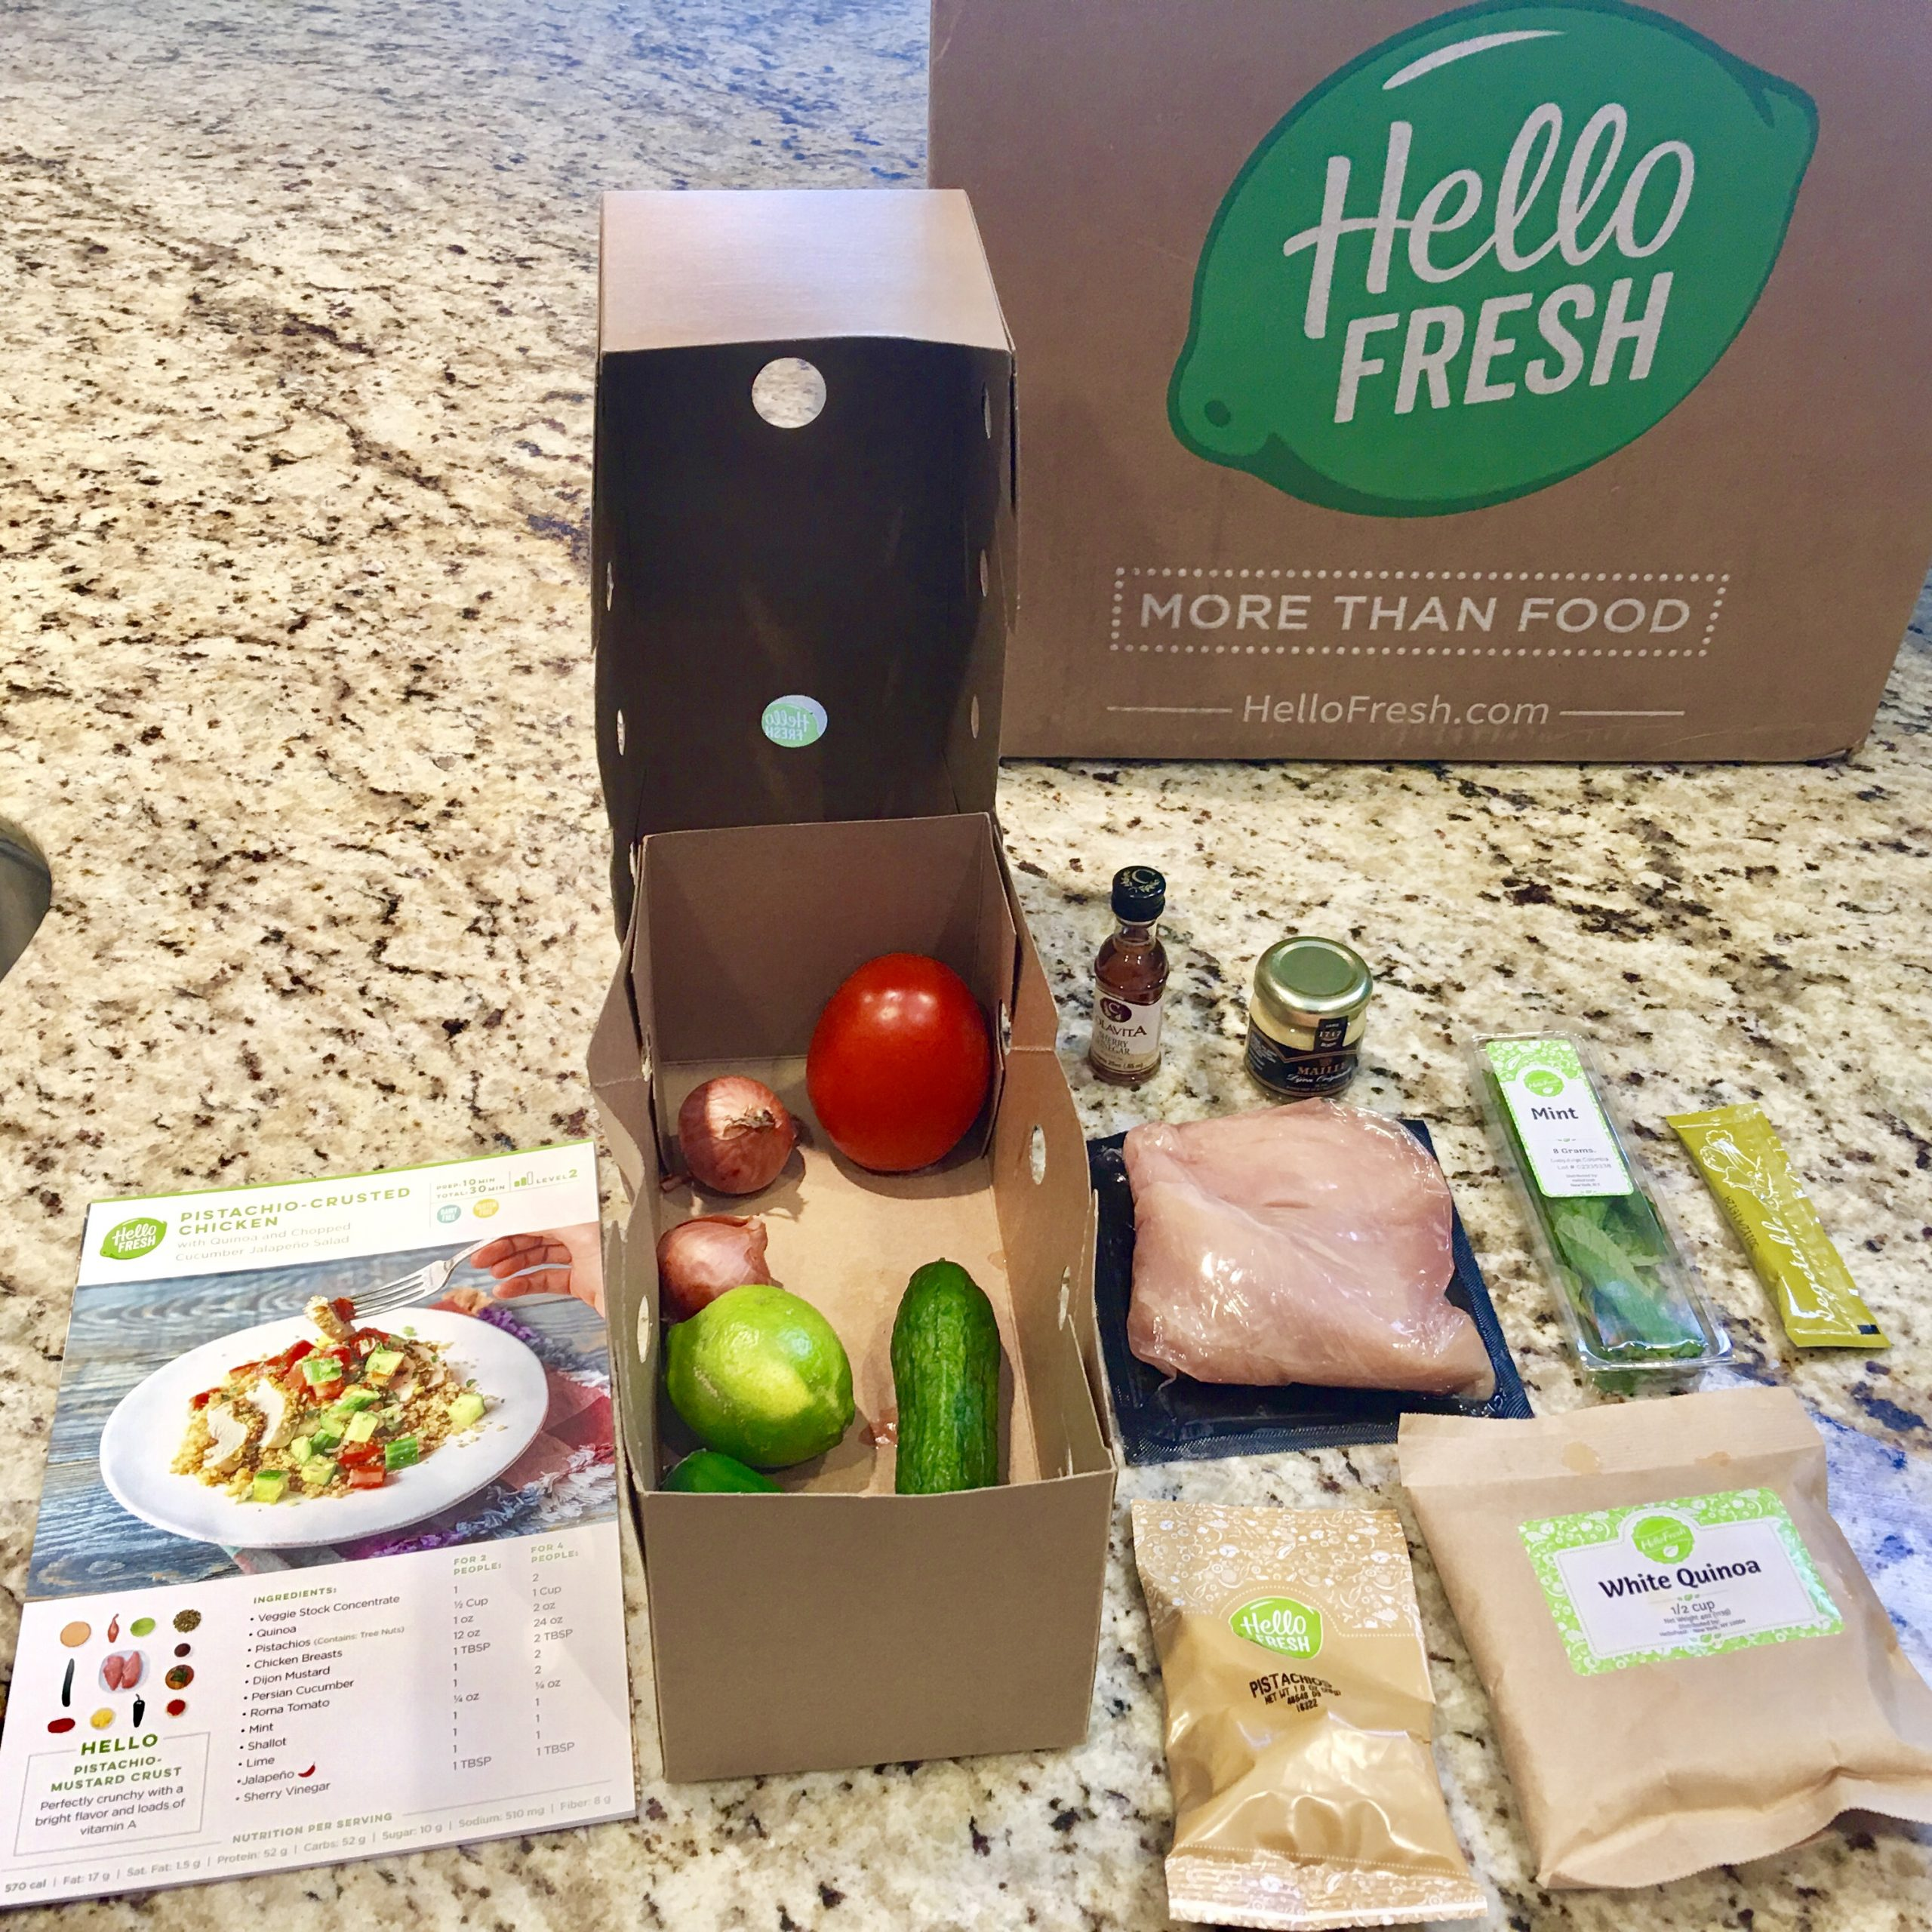 Features Meal Kit Delivery Service